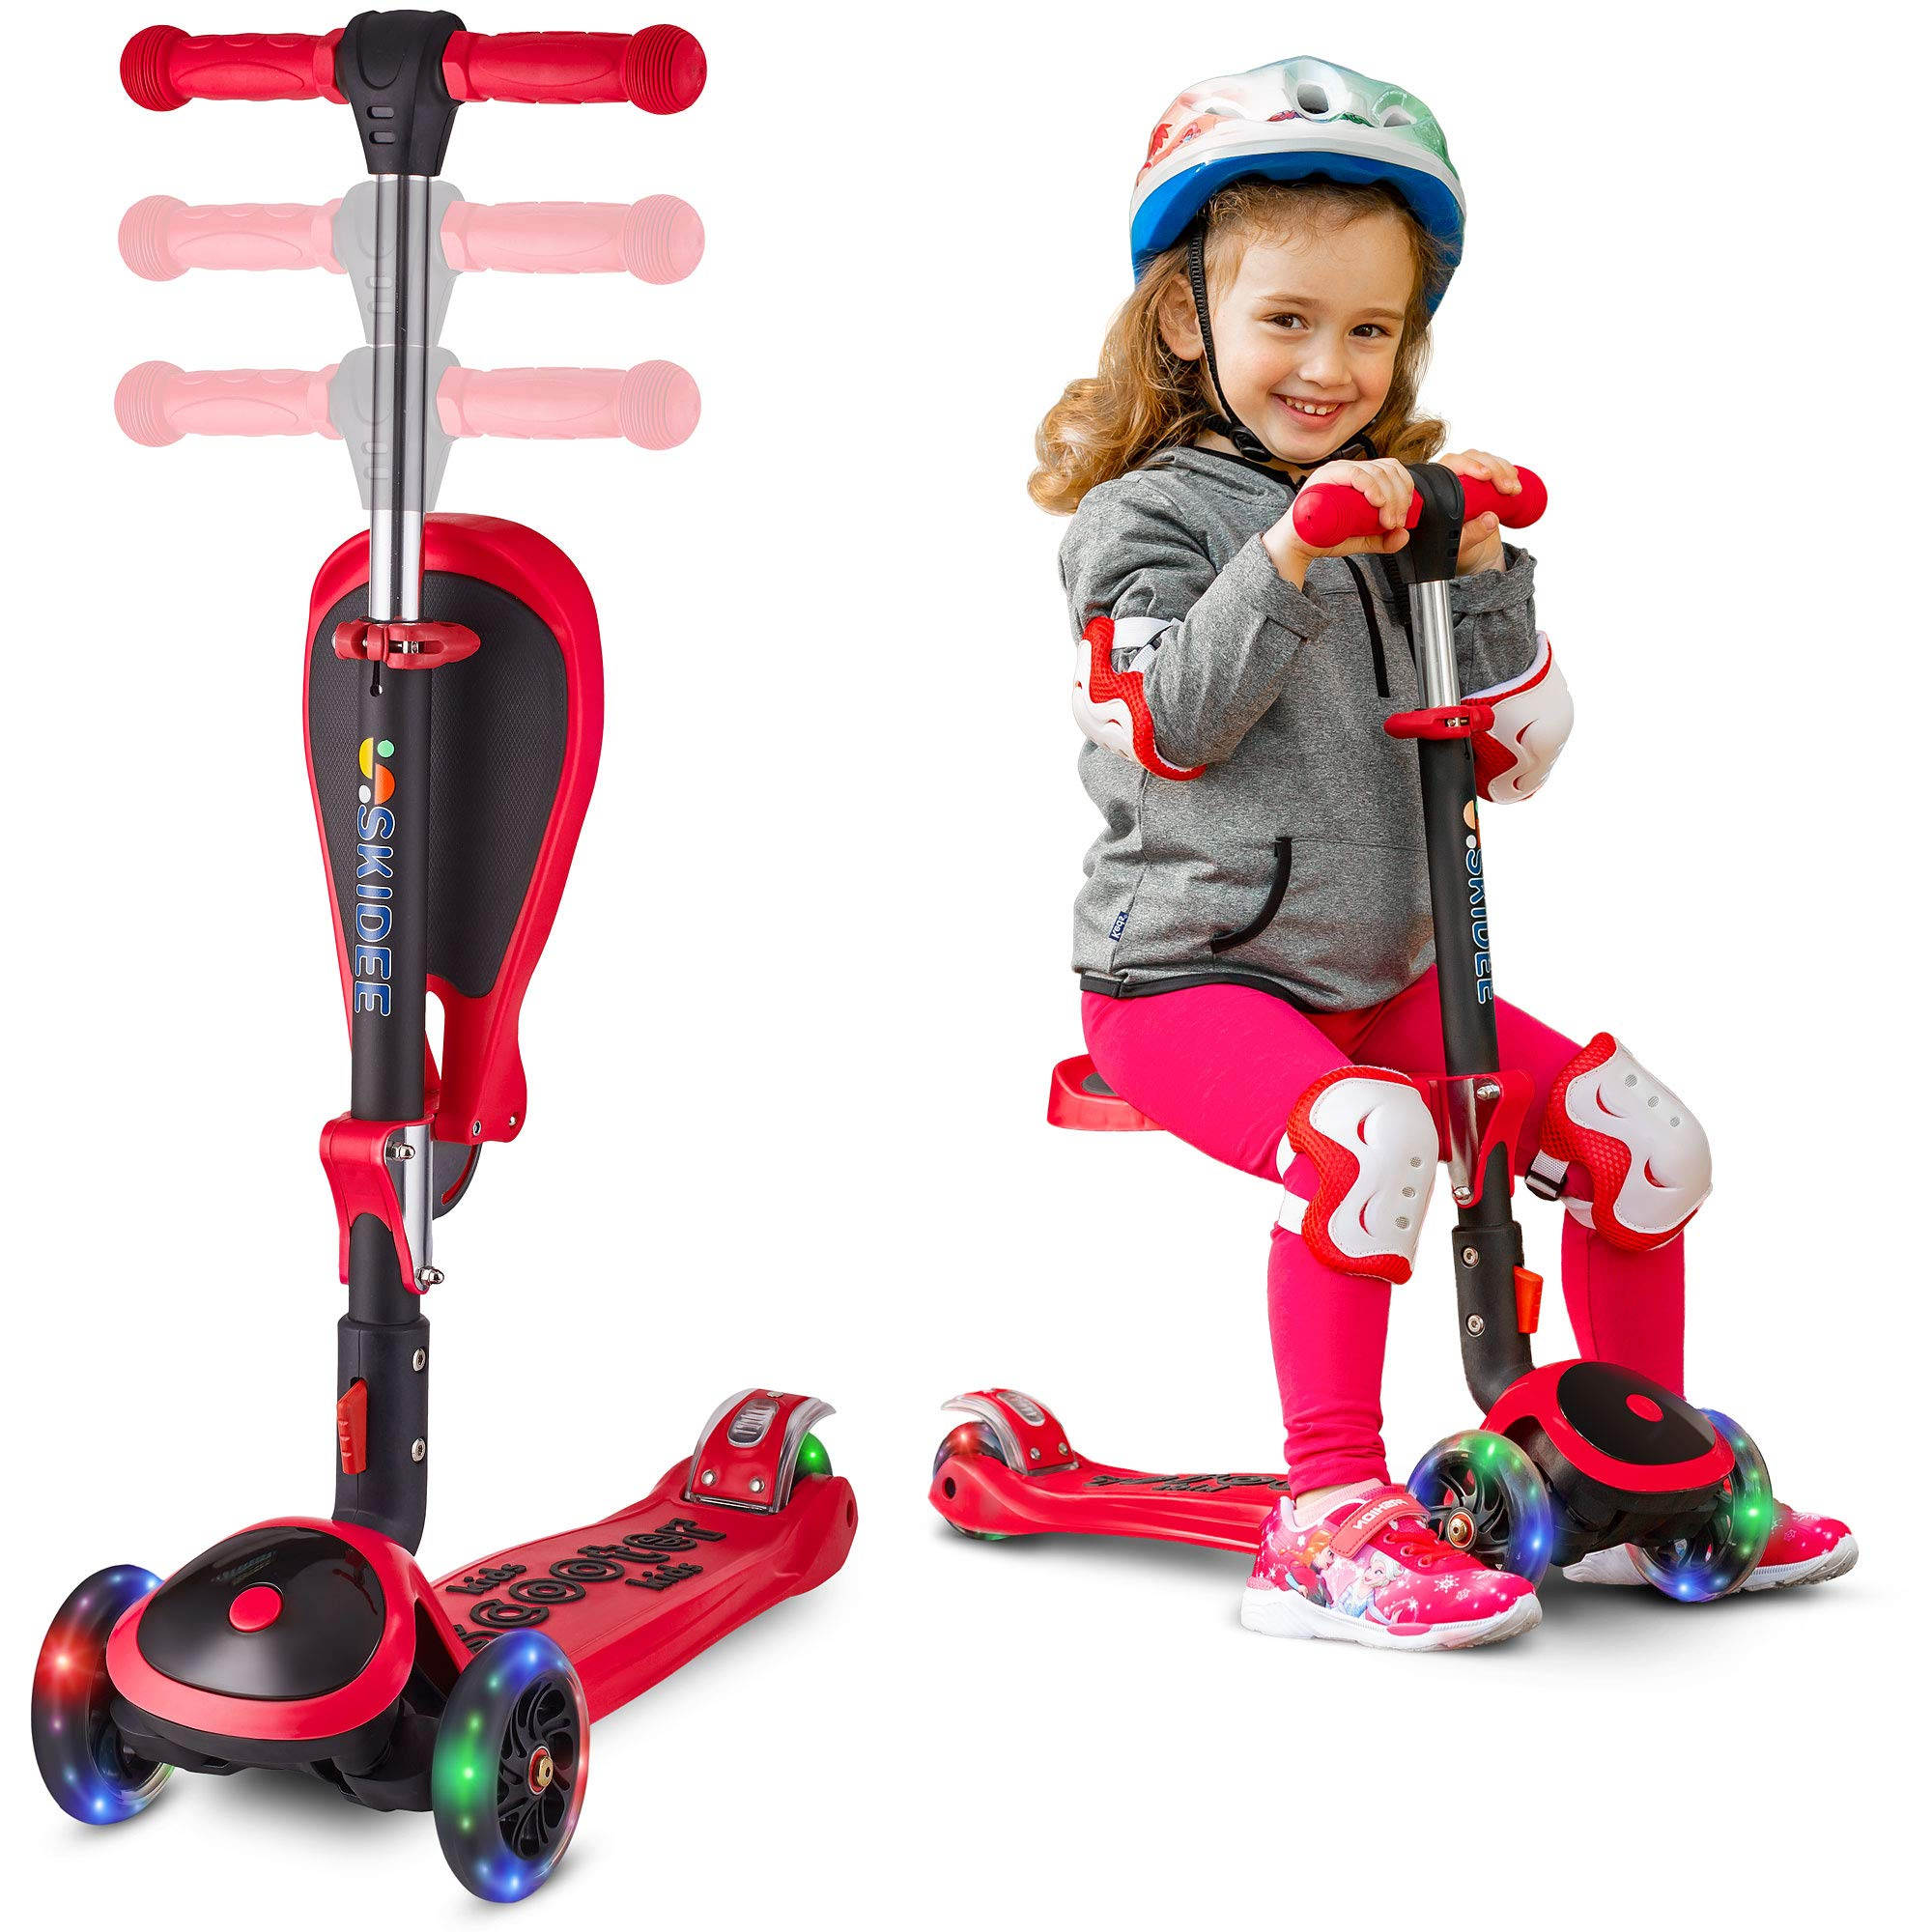 SKIDEE Scooter for Kids with Folding Seat – 2-in-1 Adjustable 3 Wheel Kick Scooter for Toddlers Girls & Boys – Fun Outdoor Toys for Kids Fitness, Outside Games, Kid Activities – Y200 (Red, Scooter)